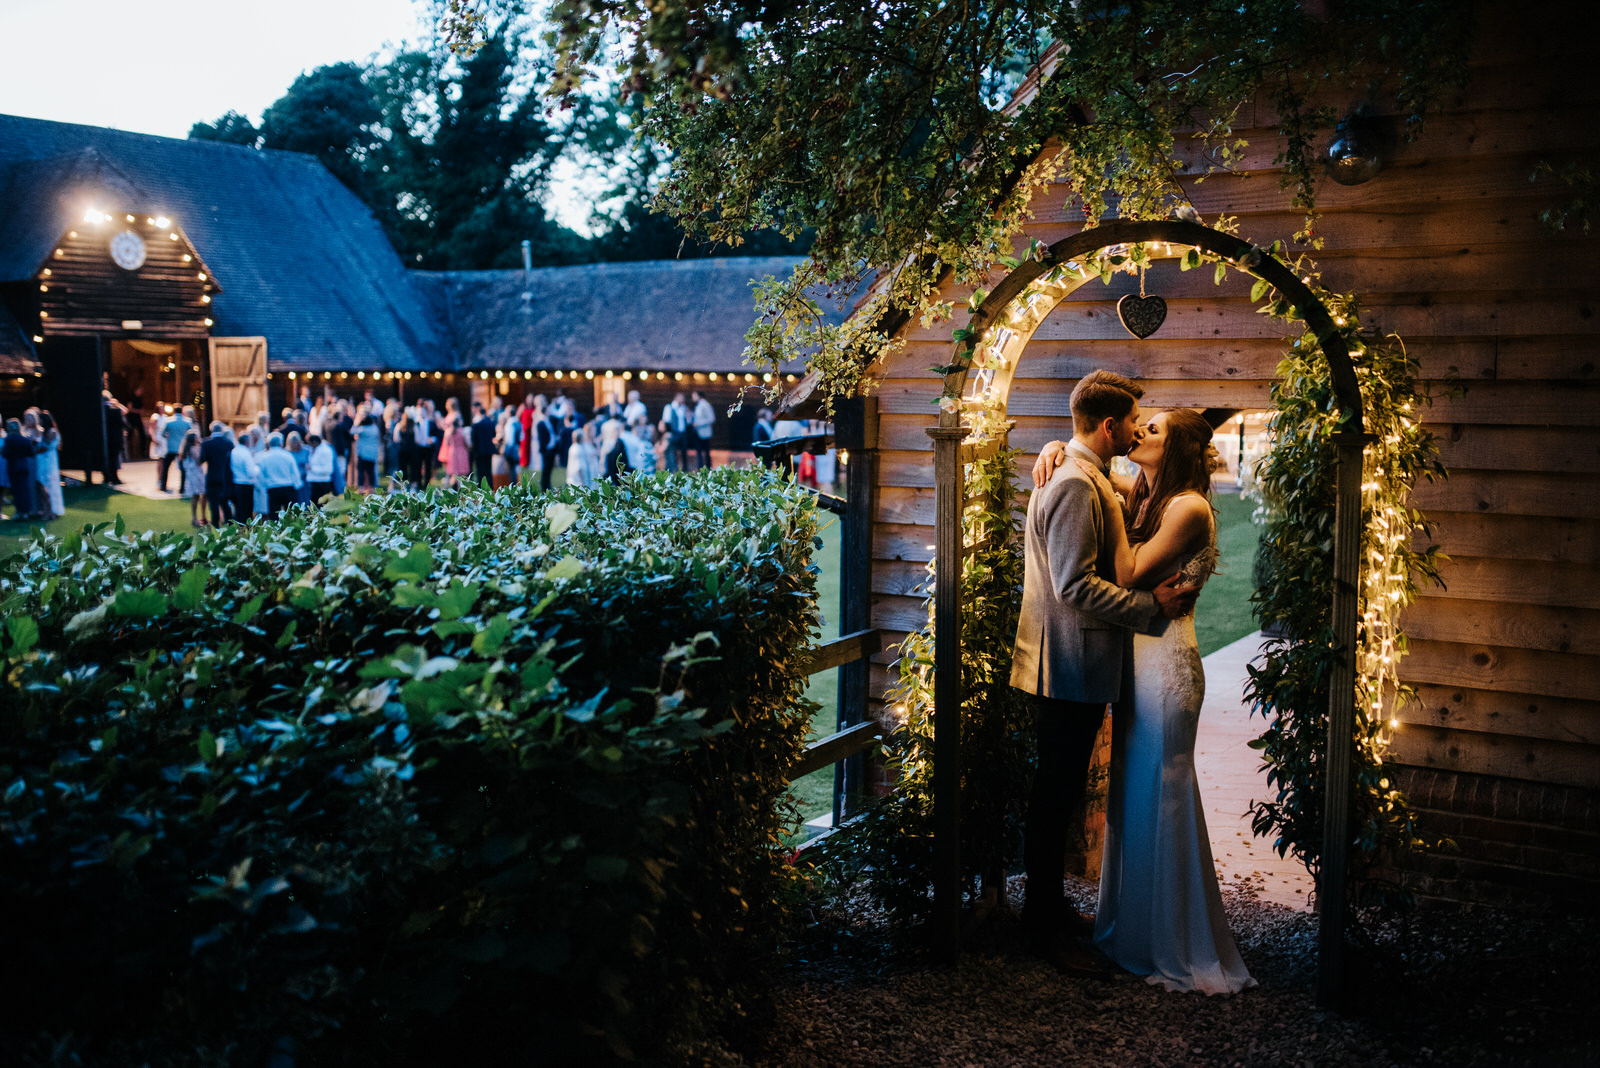 Bride and groom kiss under fairy lights as guests enjoy the even